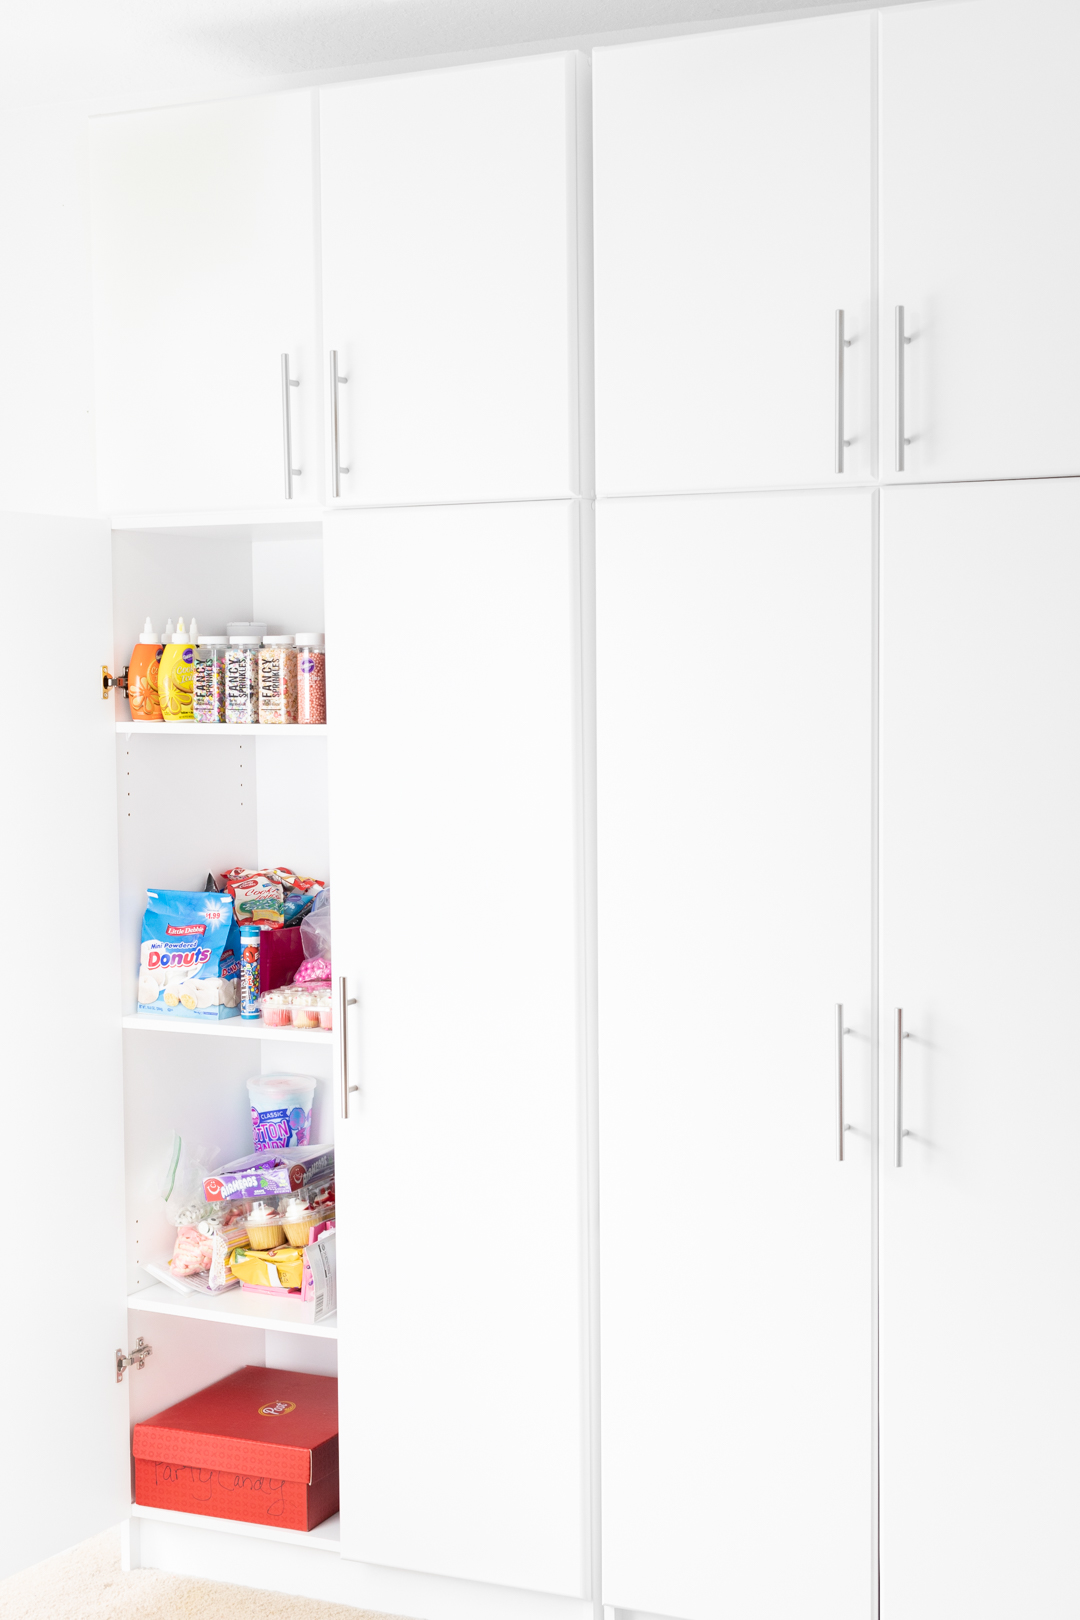 photography supplies organizational cabinet with baking ingredients and sprinkles.